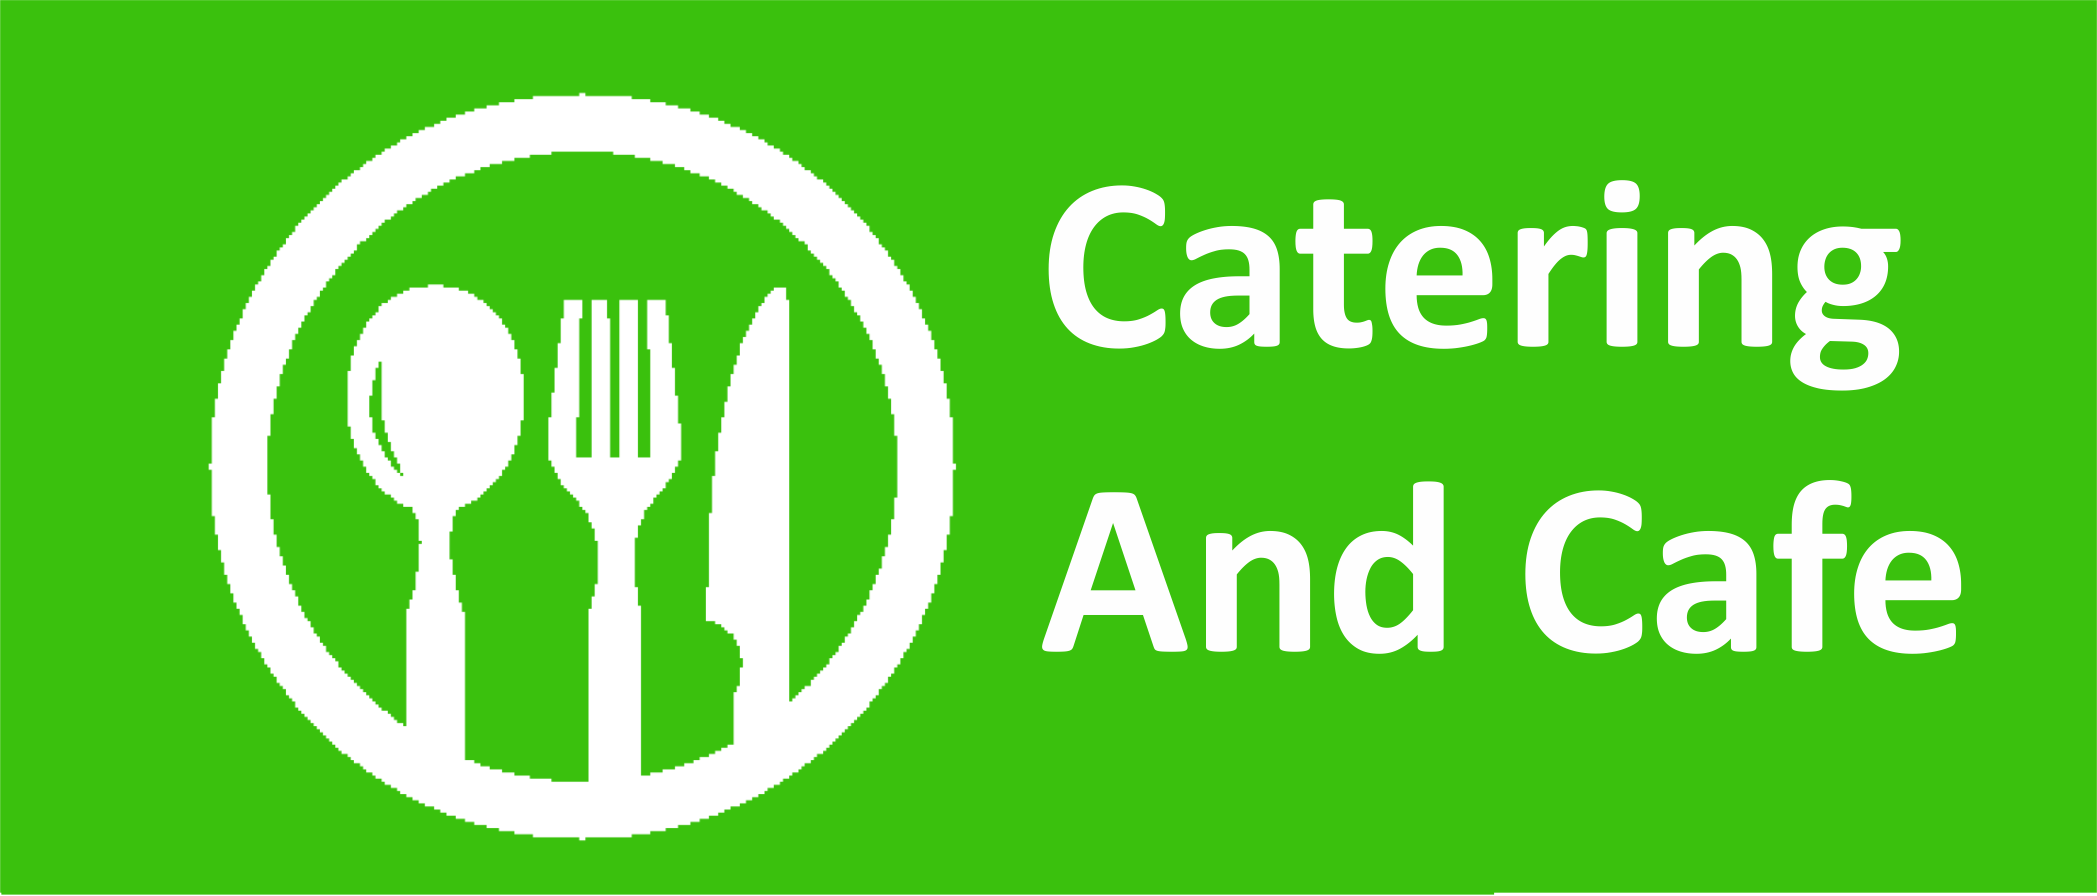 Catering & Cafe